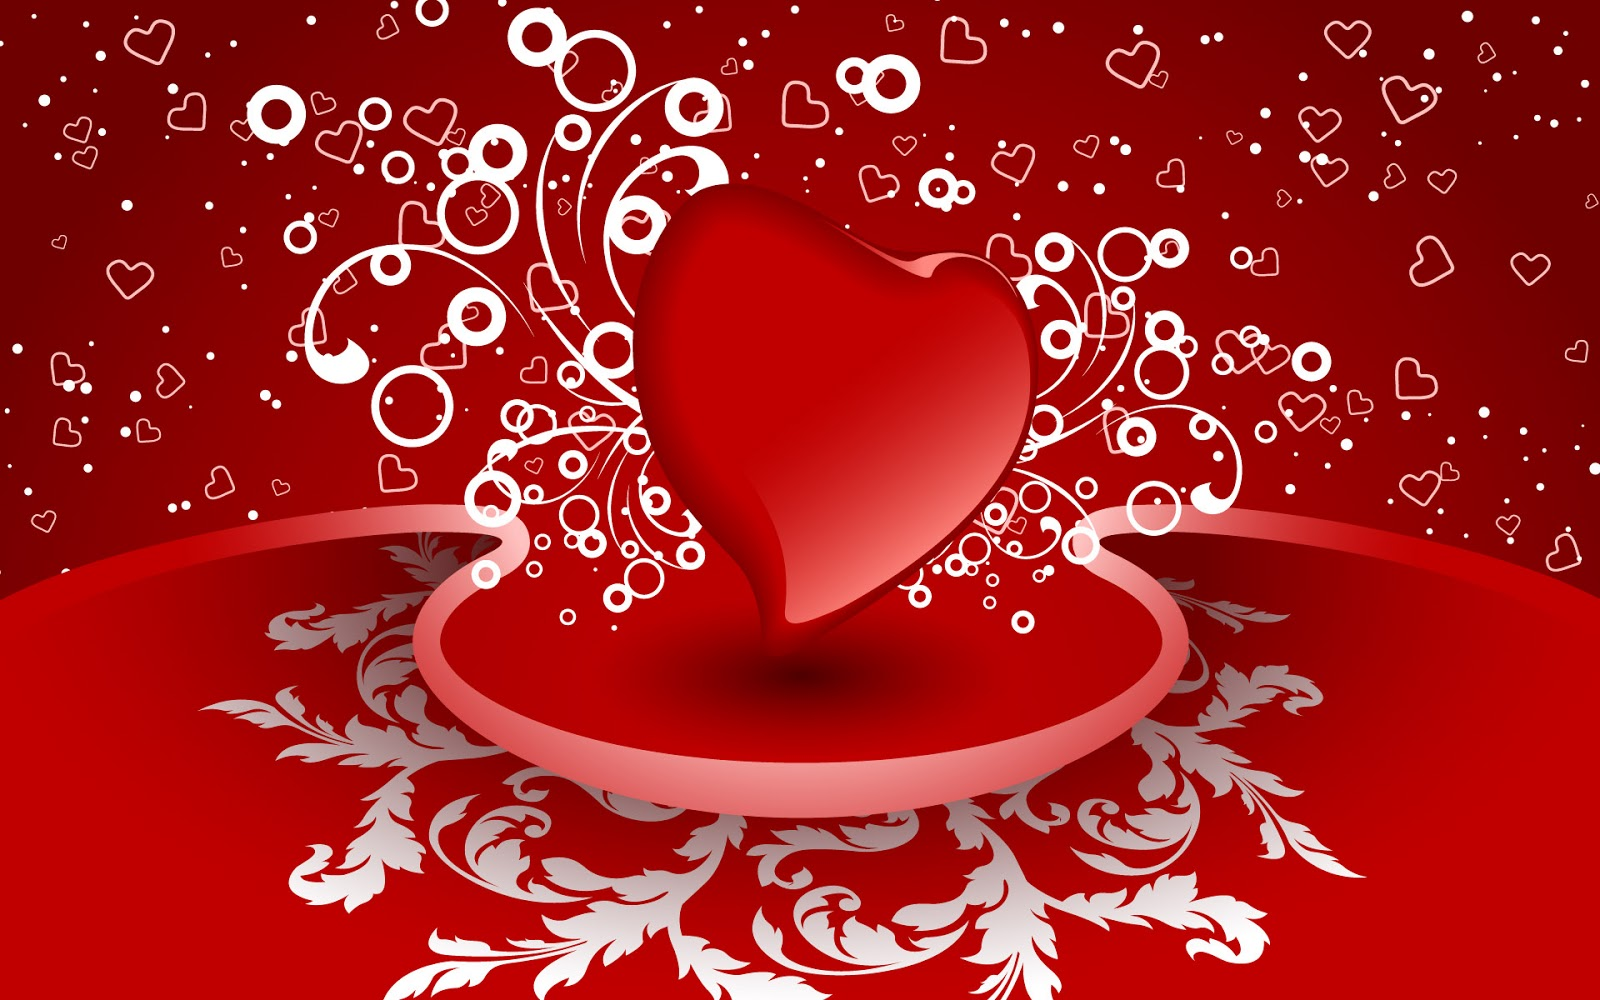 Amazing wallpapers red heart wallpaper heart wallpapers for Wallpaper home is where the heart is